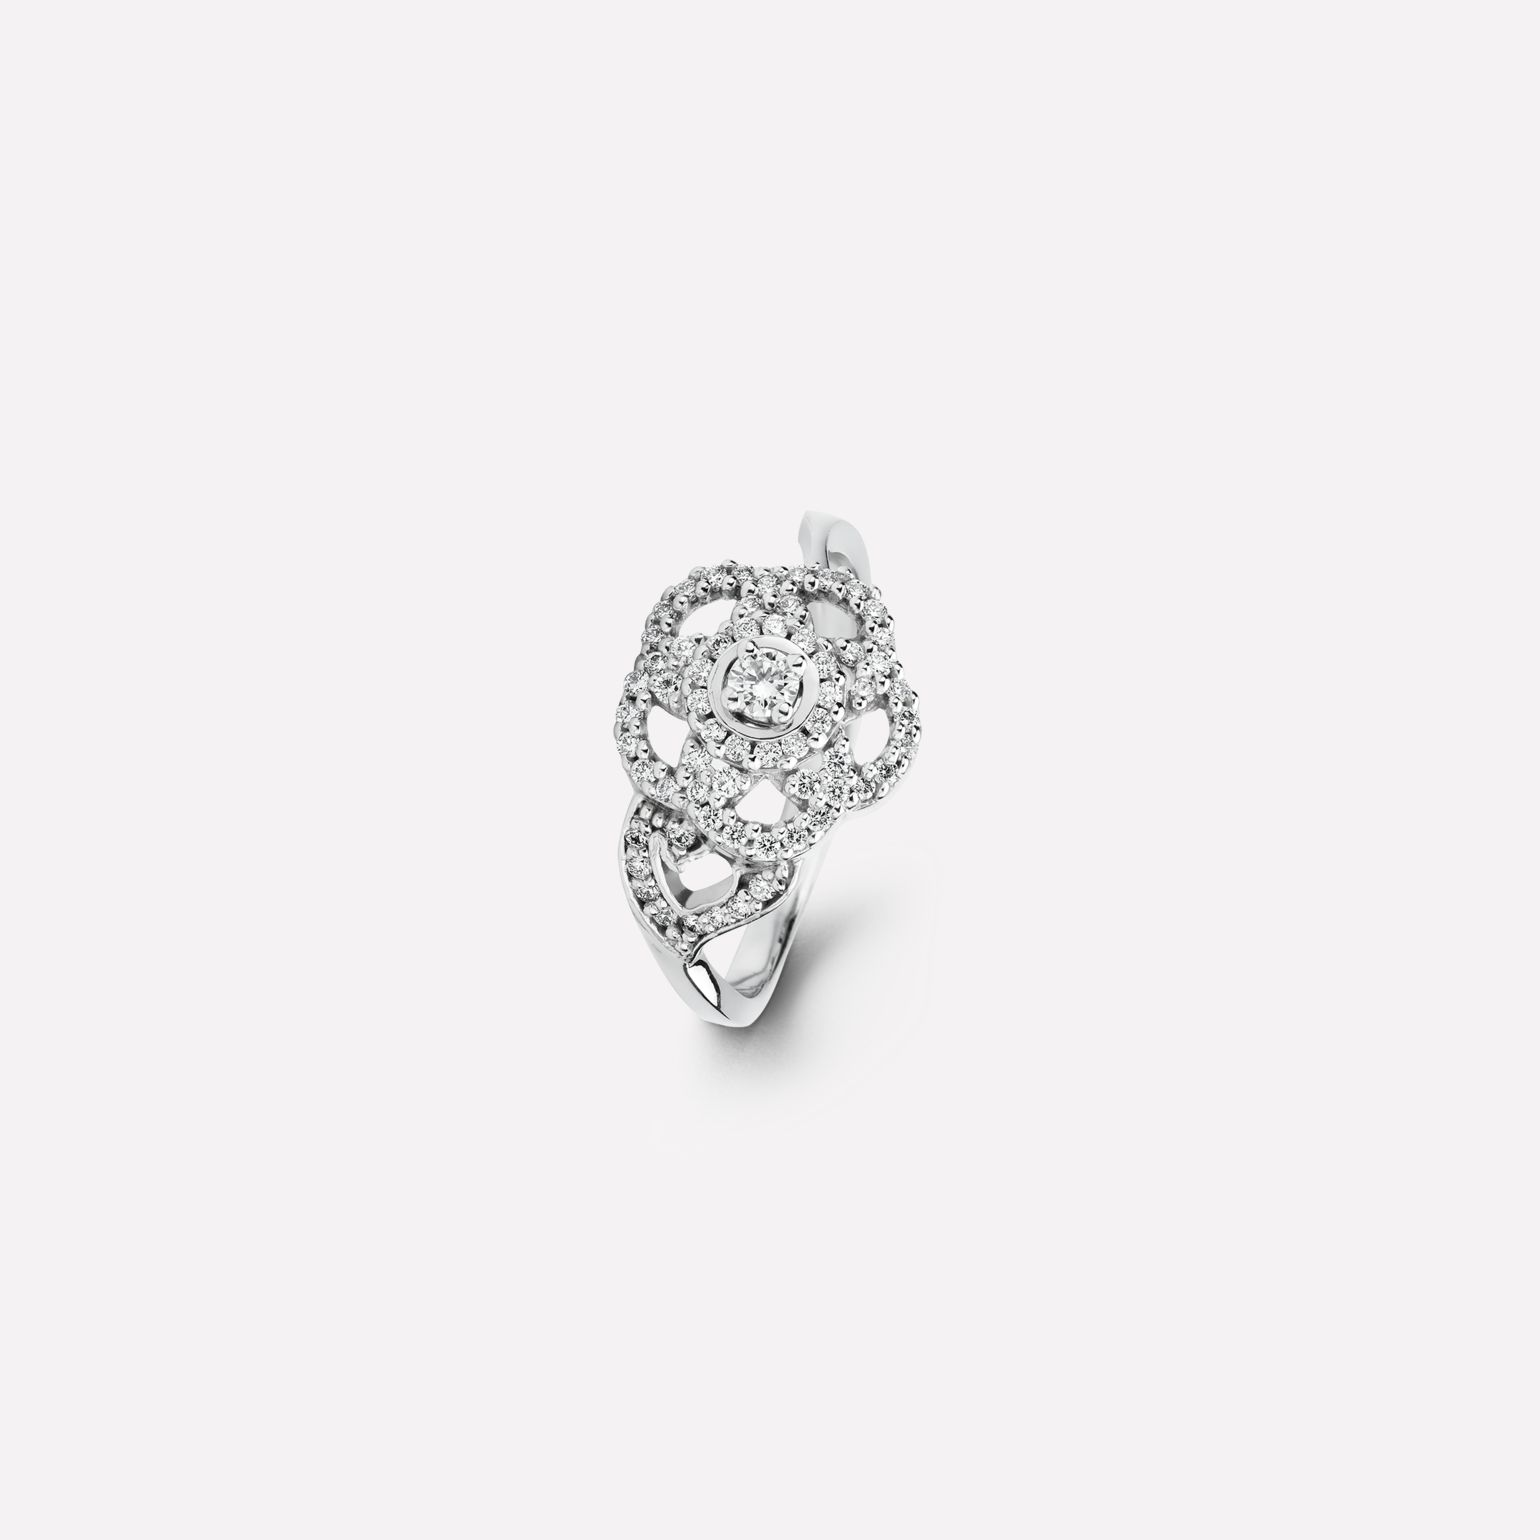 Camélia ring Camélia Brodé ring in 18K white gold and diamonds with one center diamond